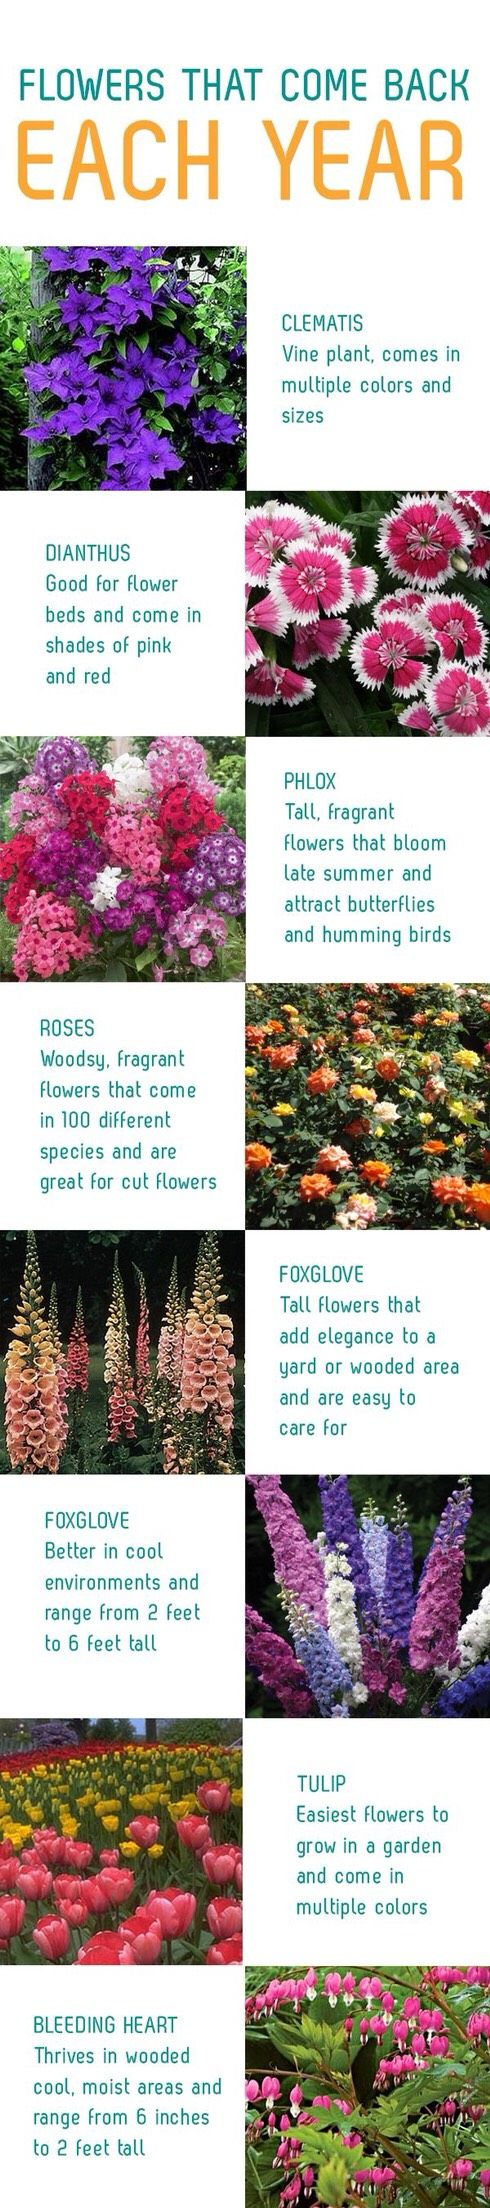 Make Light Work of Planting By Identifying Flowers That Come Back Every Year